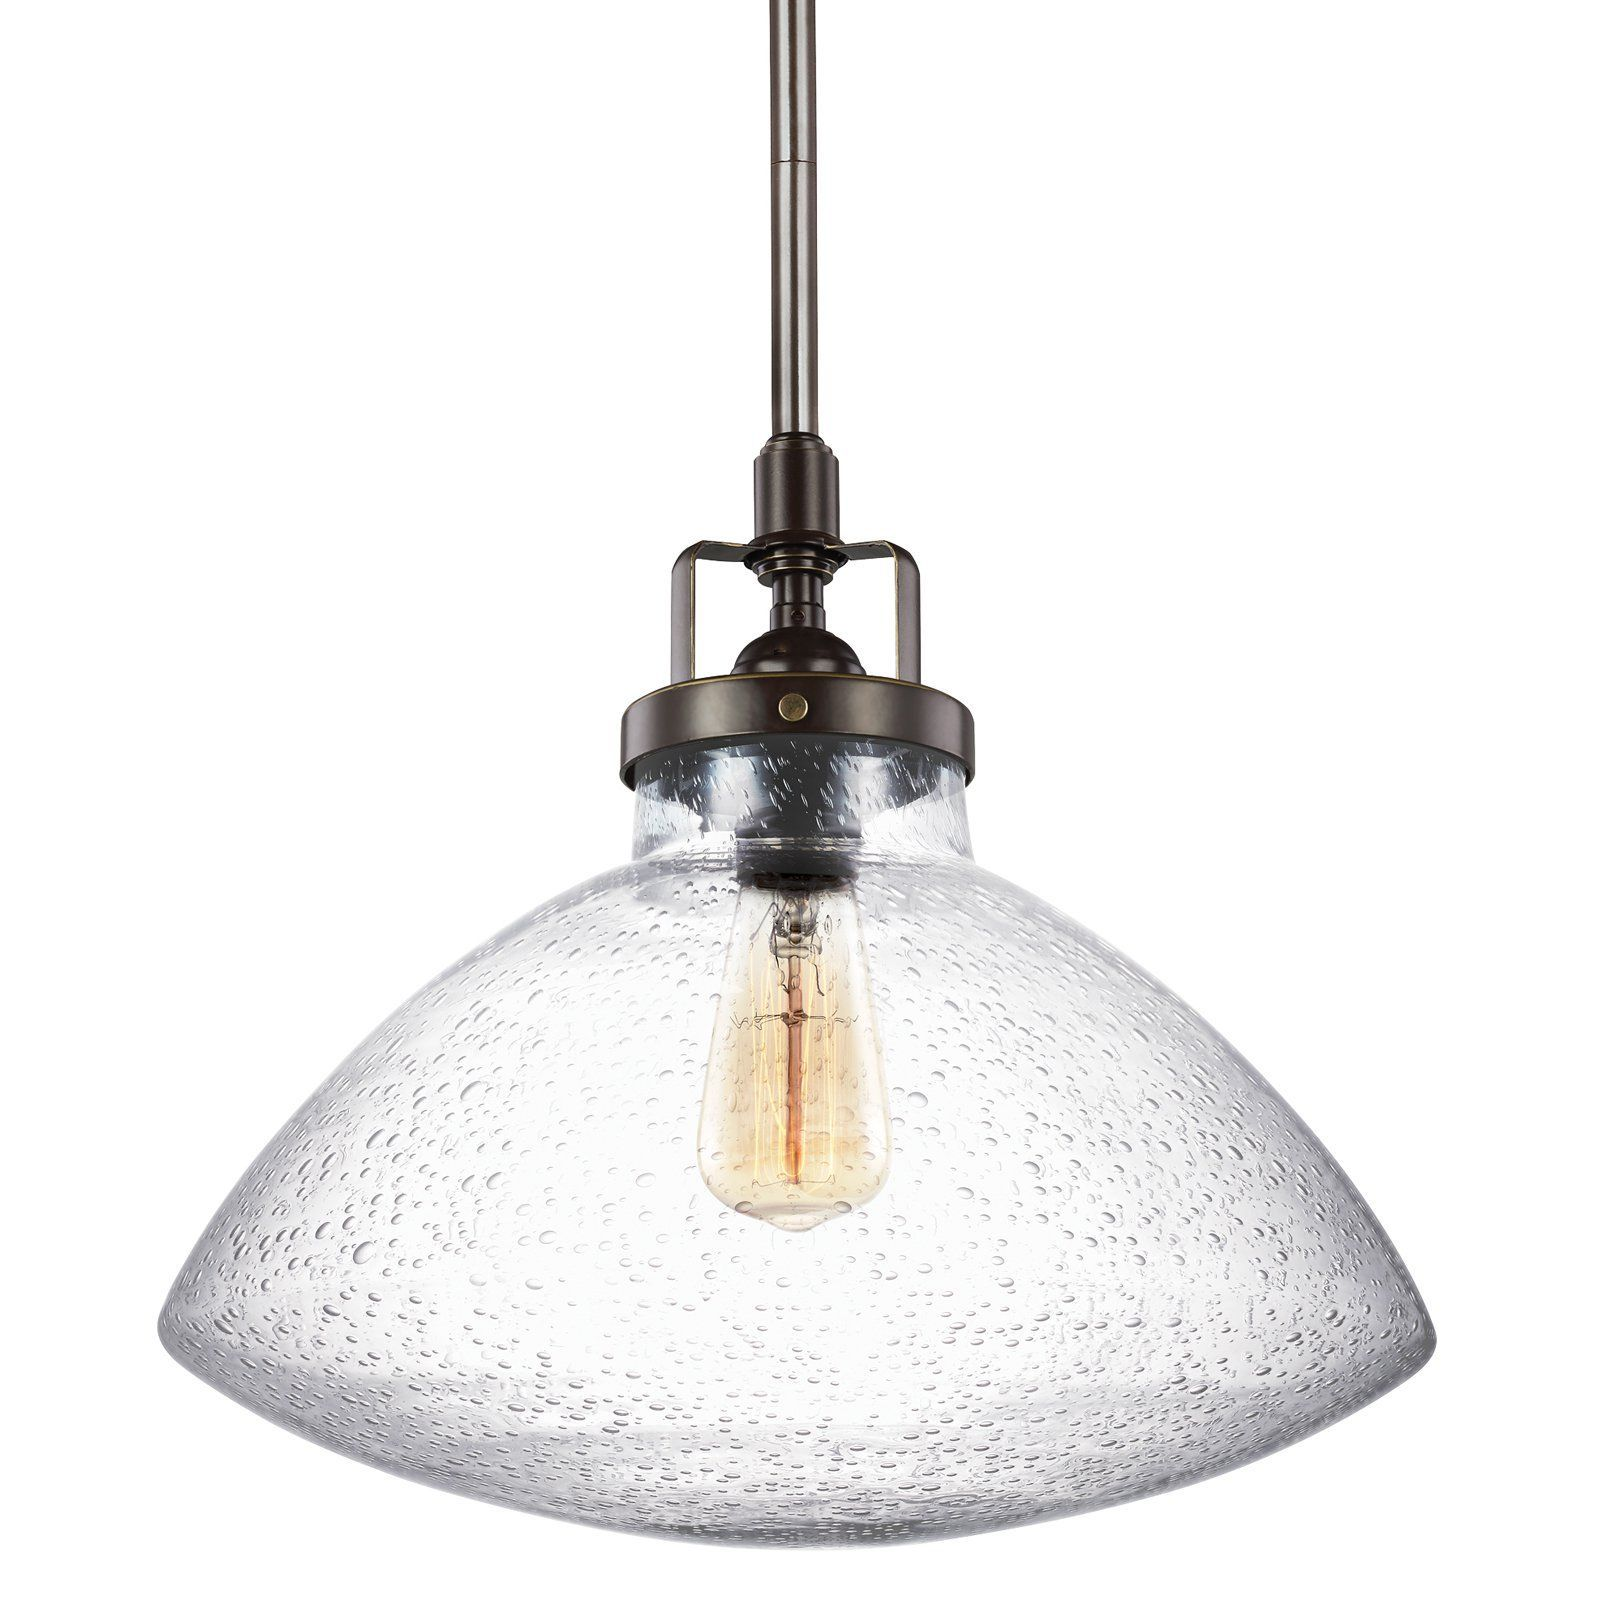 Sea gull lighting belton 6514501 782 pendant light from hayneedle sea gull lighting belton 6514501 782 pendant light from hayneedle mozeypictures Image collections